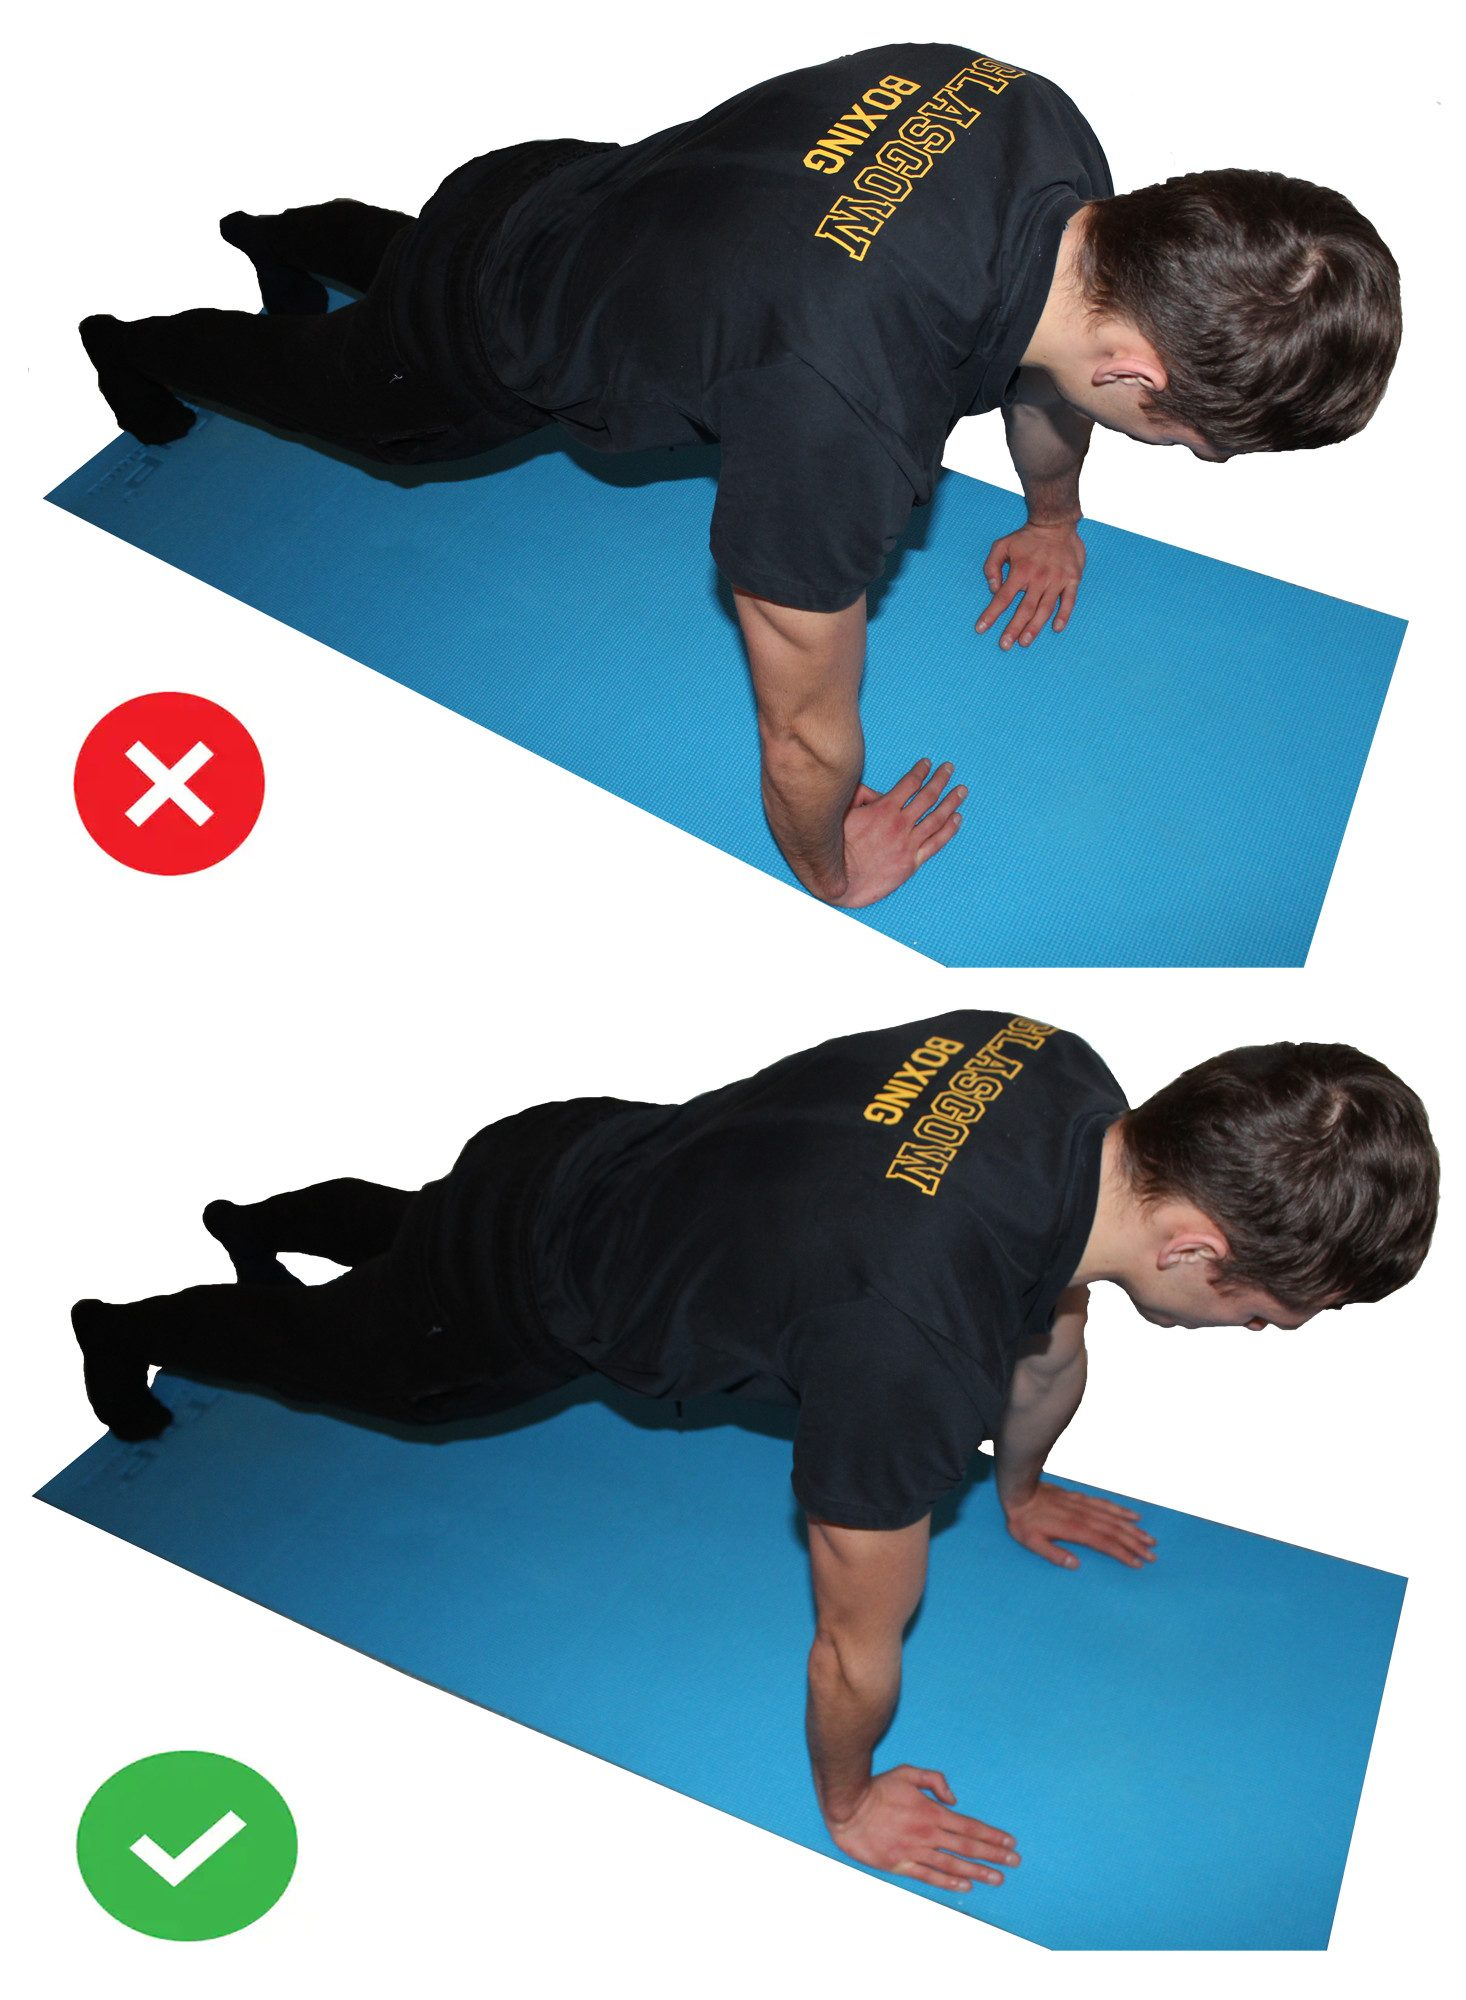 Proper pushup form: side by side comparison of proper hand placement.